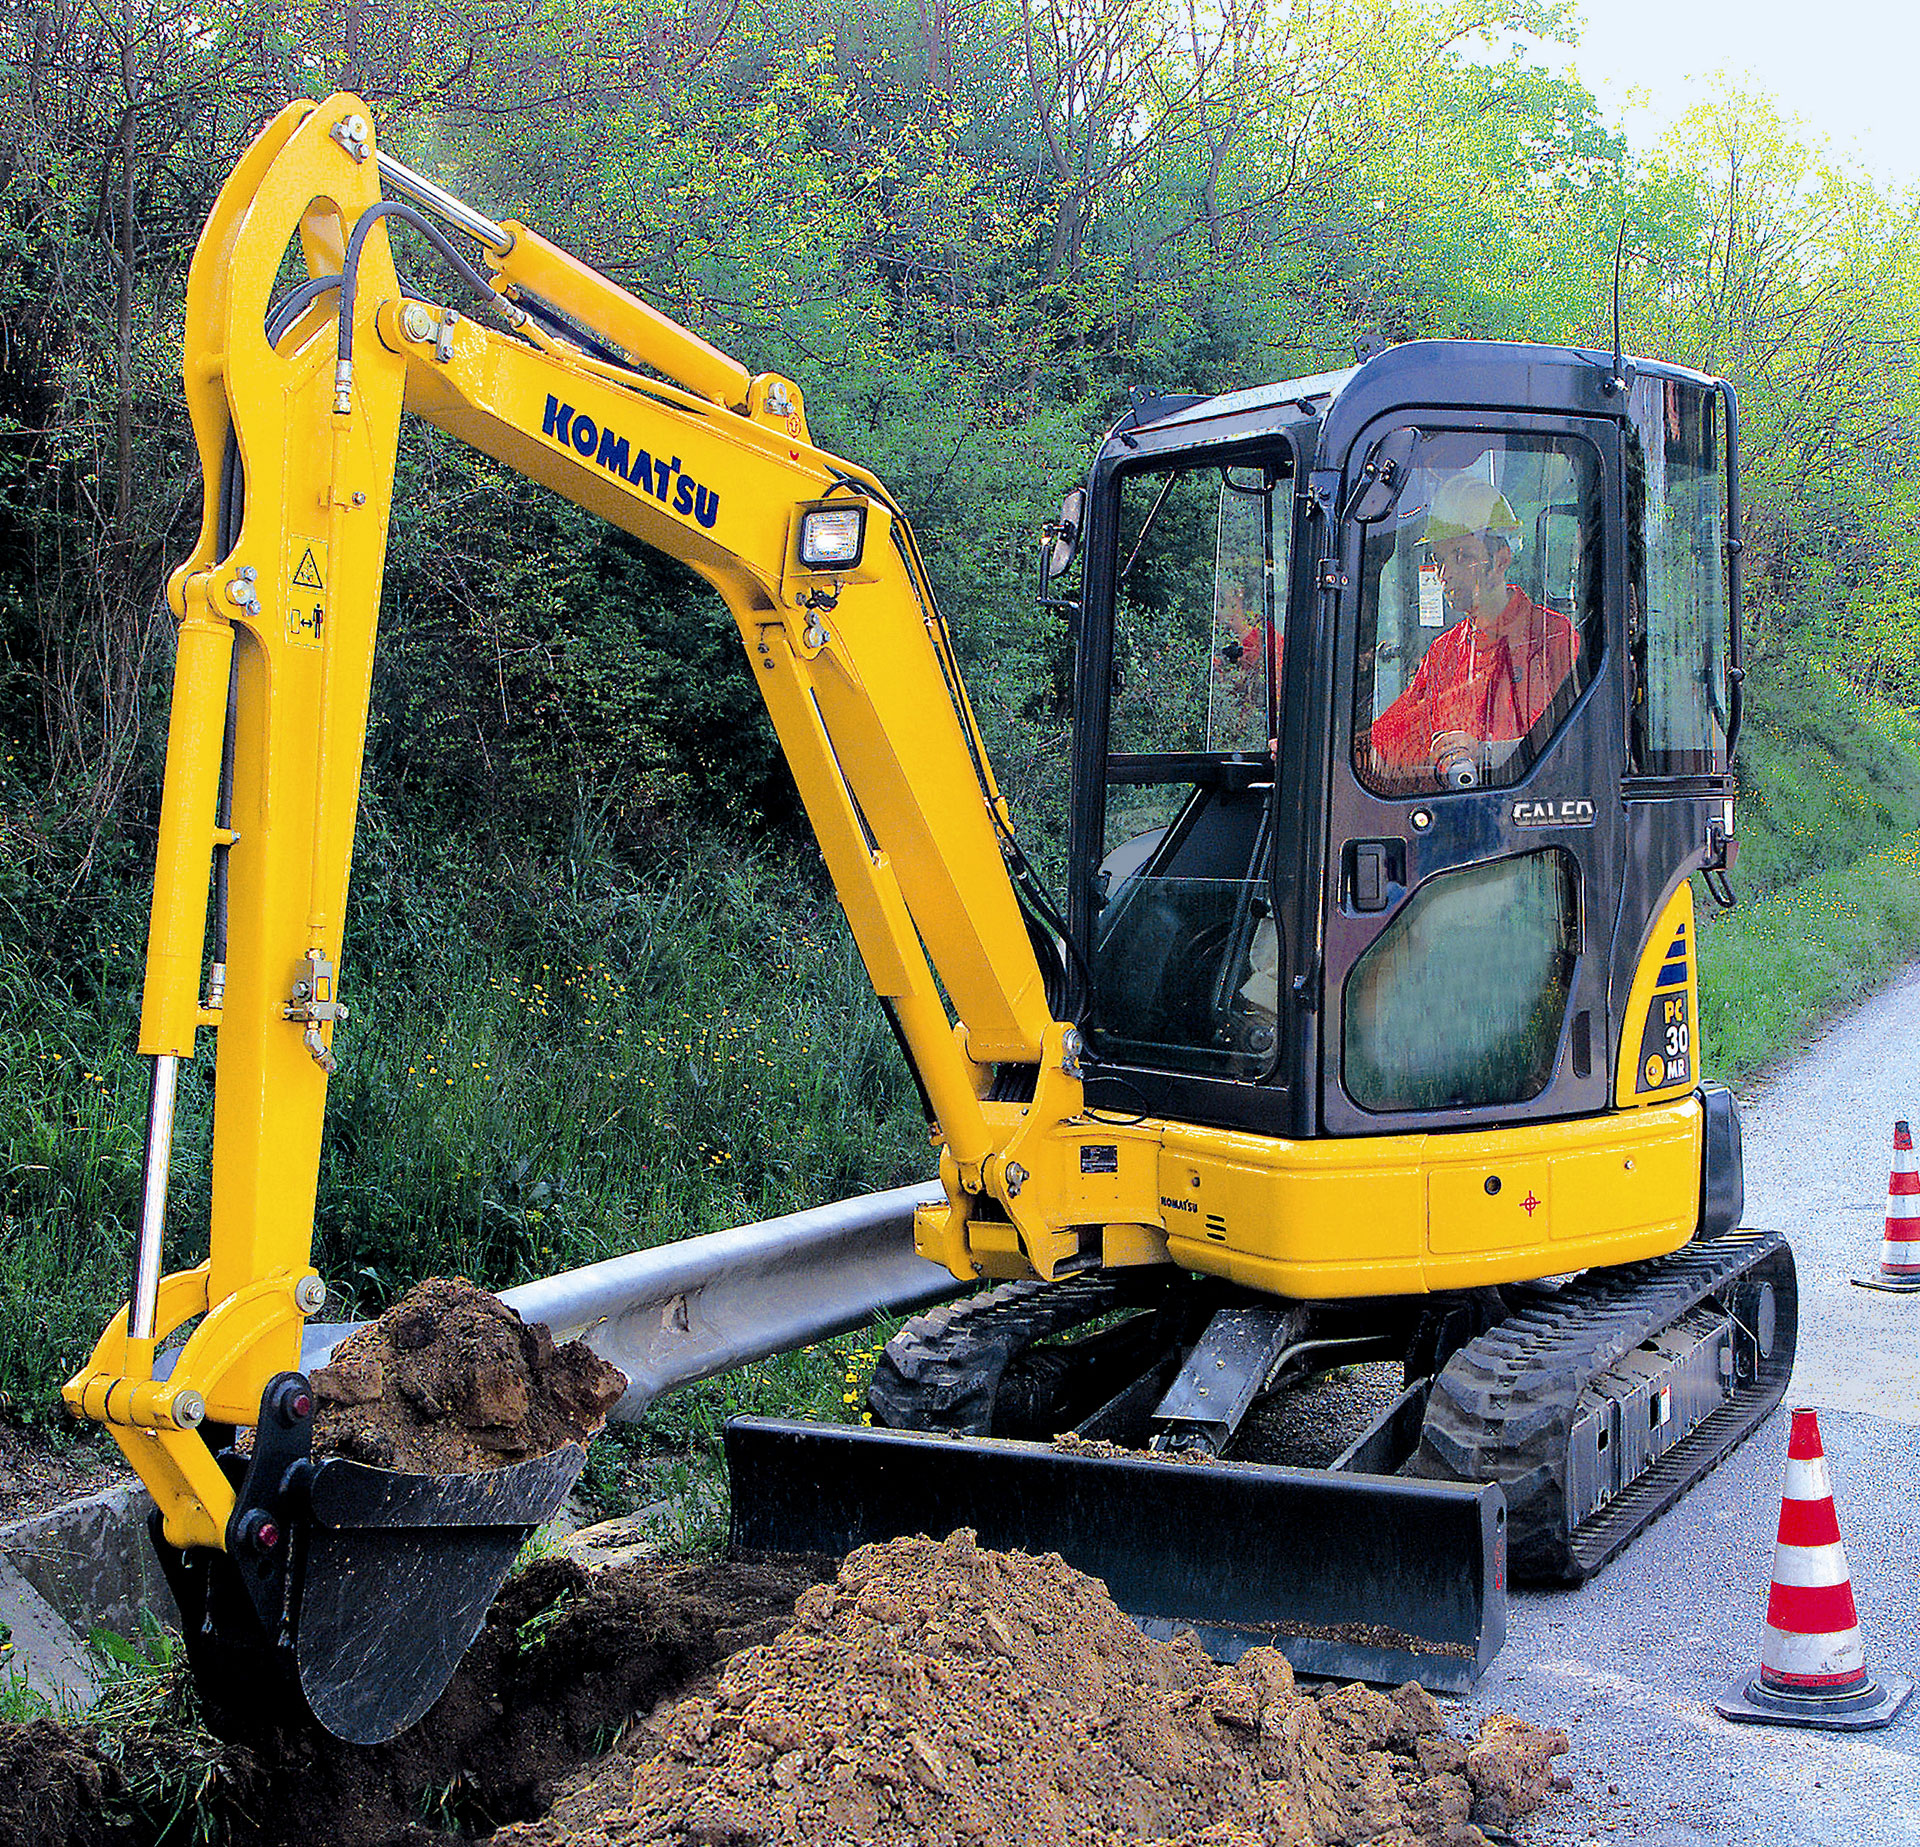 %focuskw Compact or Mini Excavators are perfect for Confined Job Sites